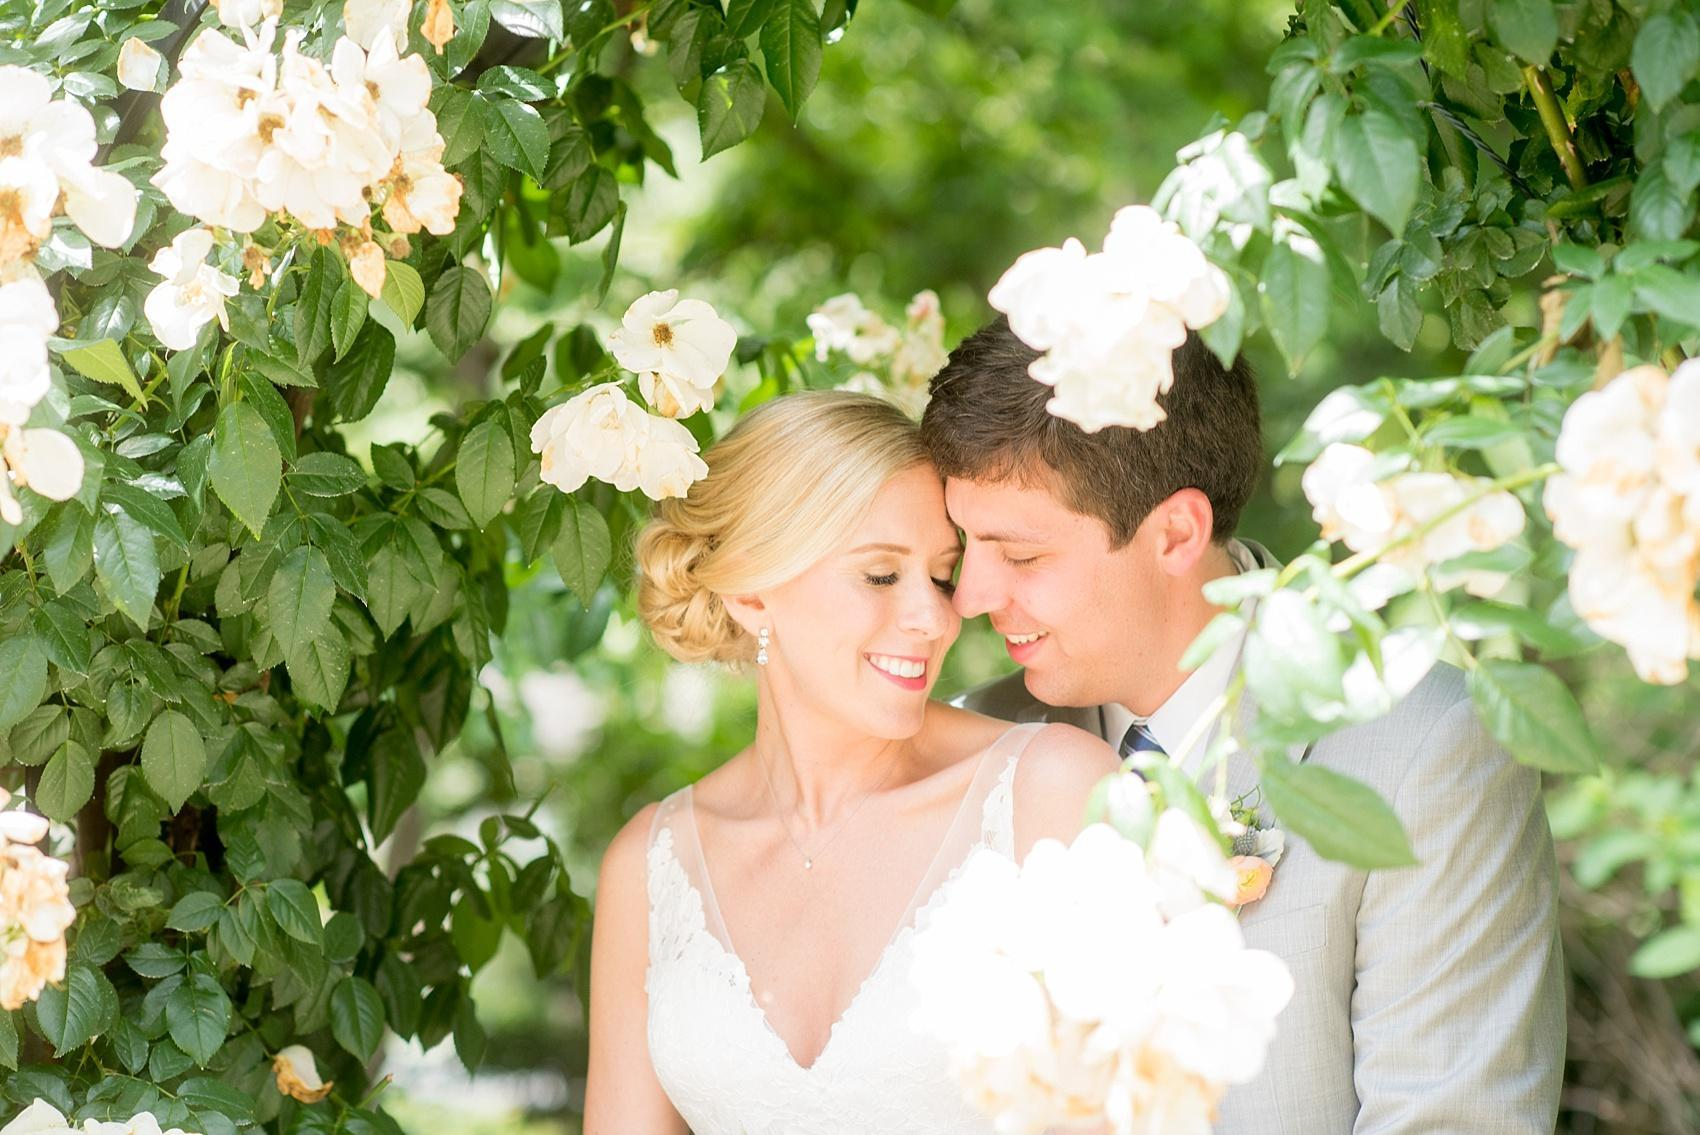 Mikkel Paige Photography photos of a downtown Raleigh Market Hall wedding with spring pictures of the bride and groom amidst rose bushes.